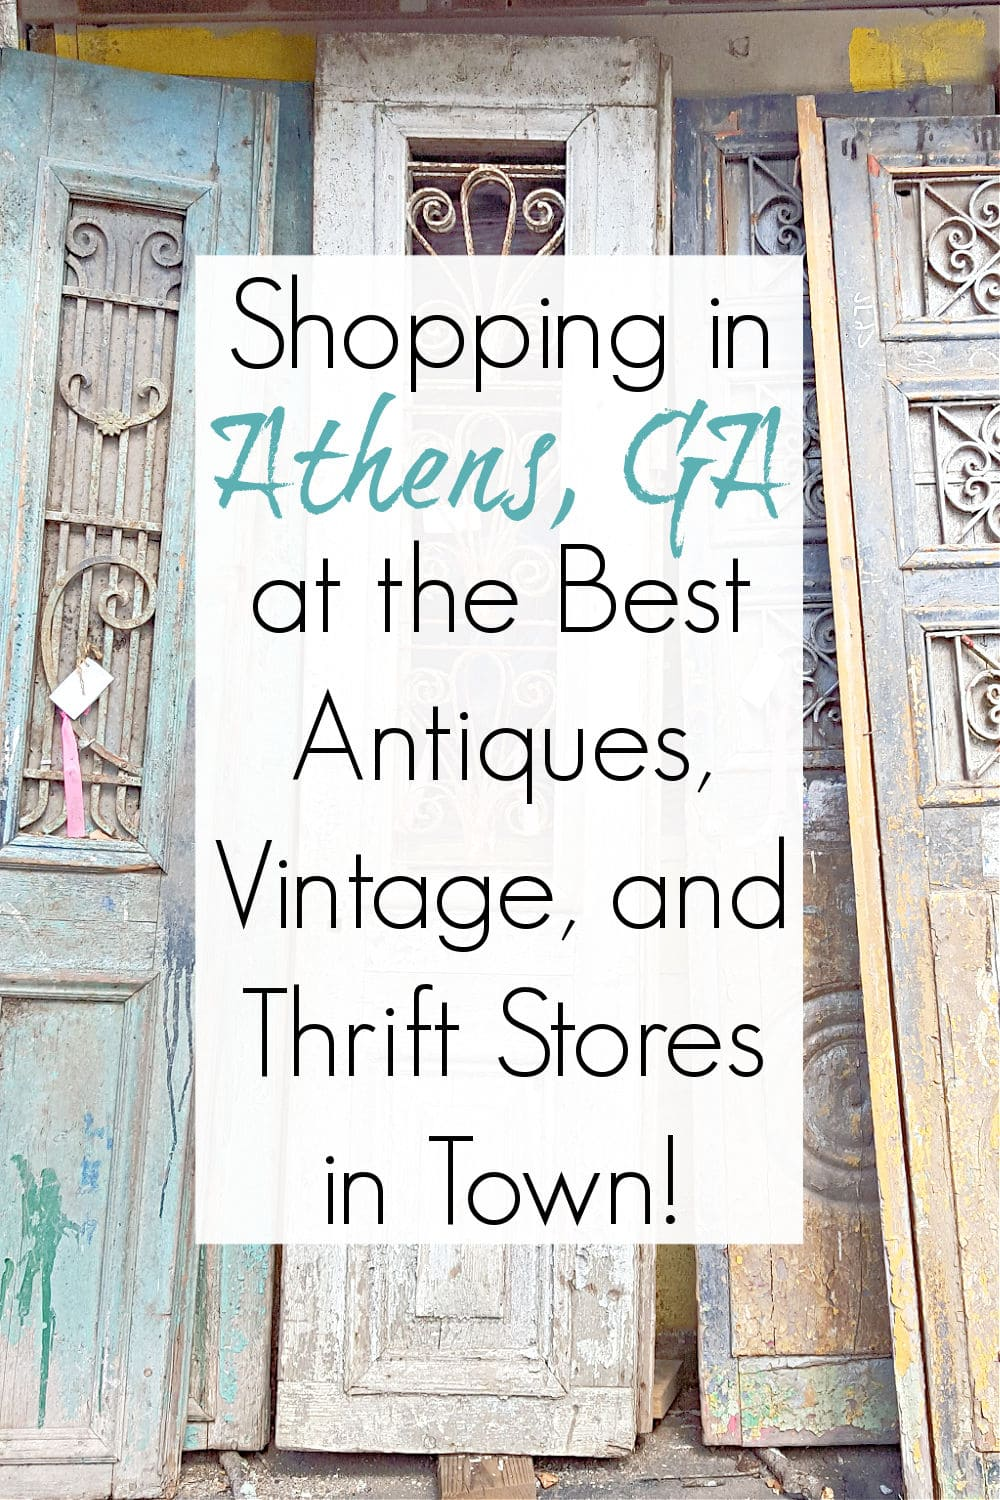 antiques and thrift stores in athens ga